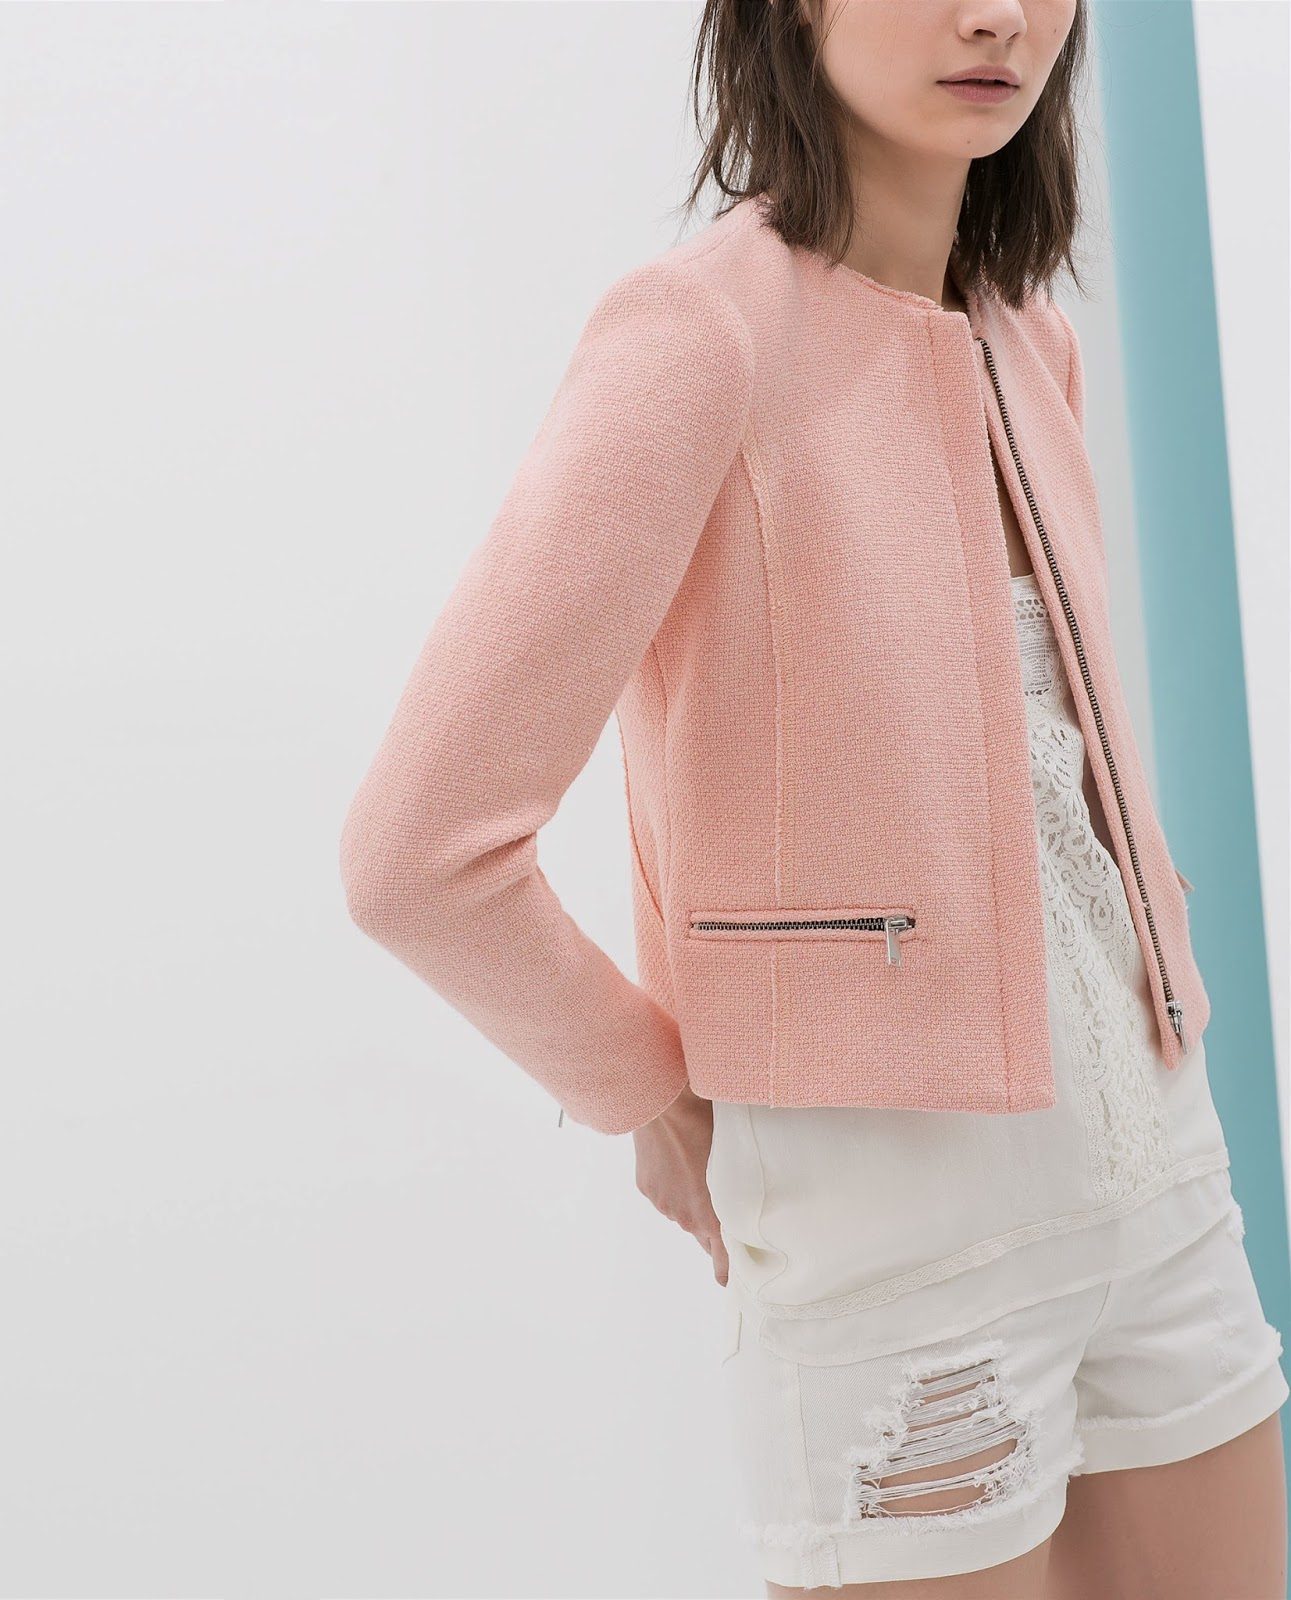 Collarless Bouclé Spring Jackets | World of Fashion according to ...